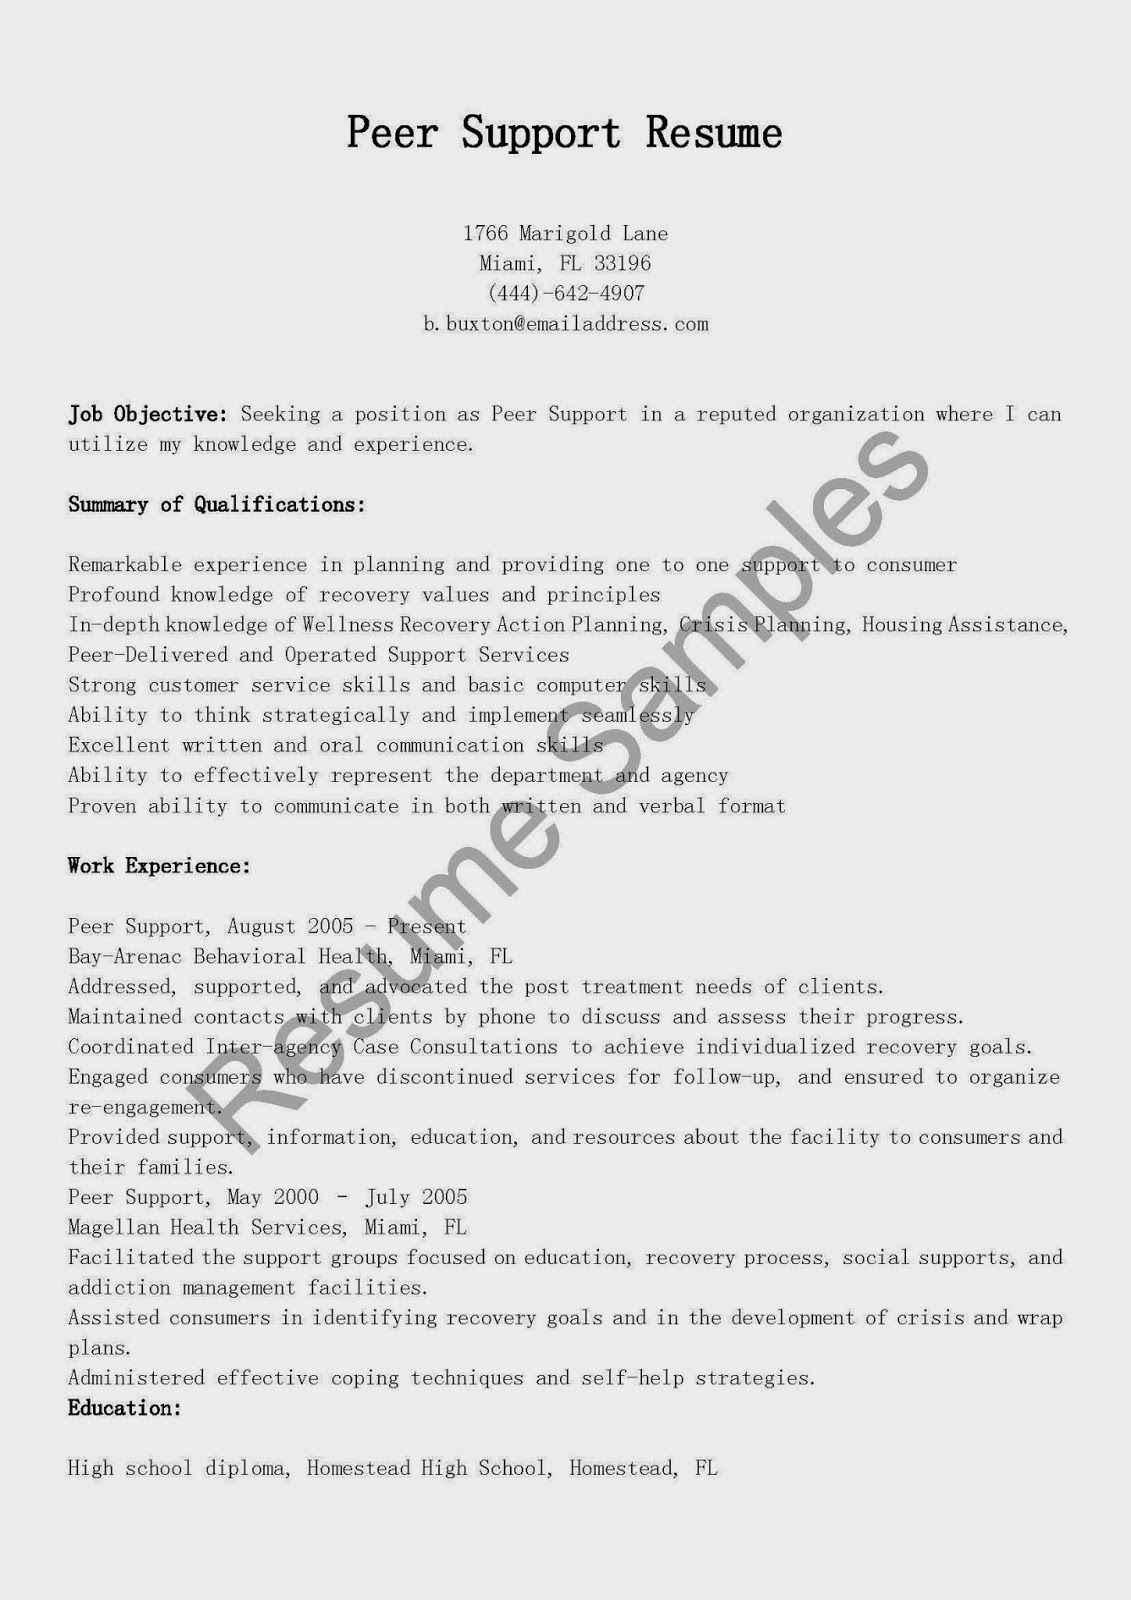 Mainframe Production Support Resume Sample Resume Samples